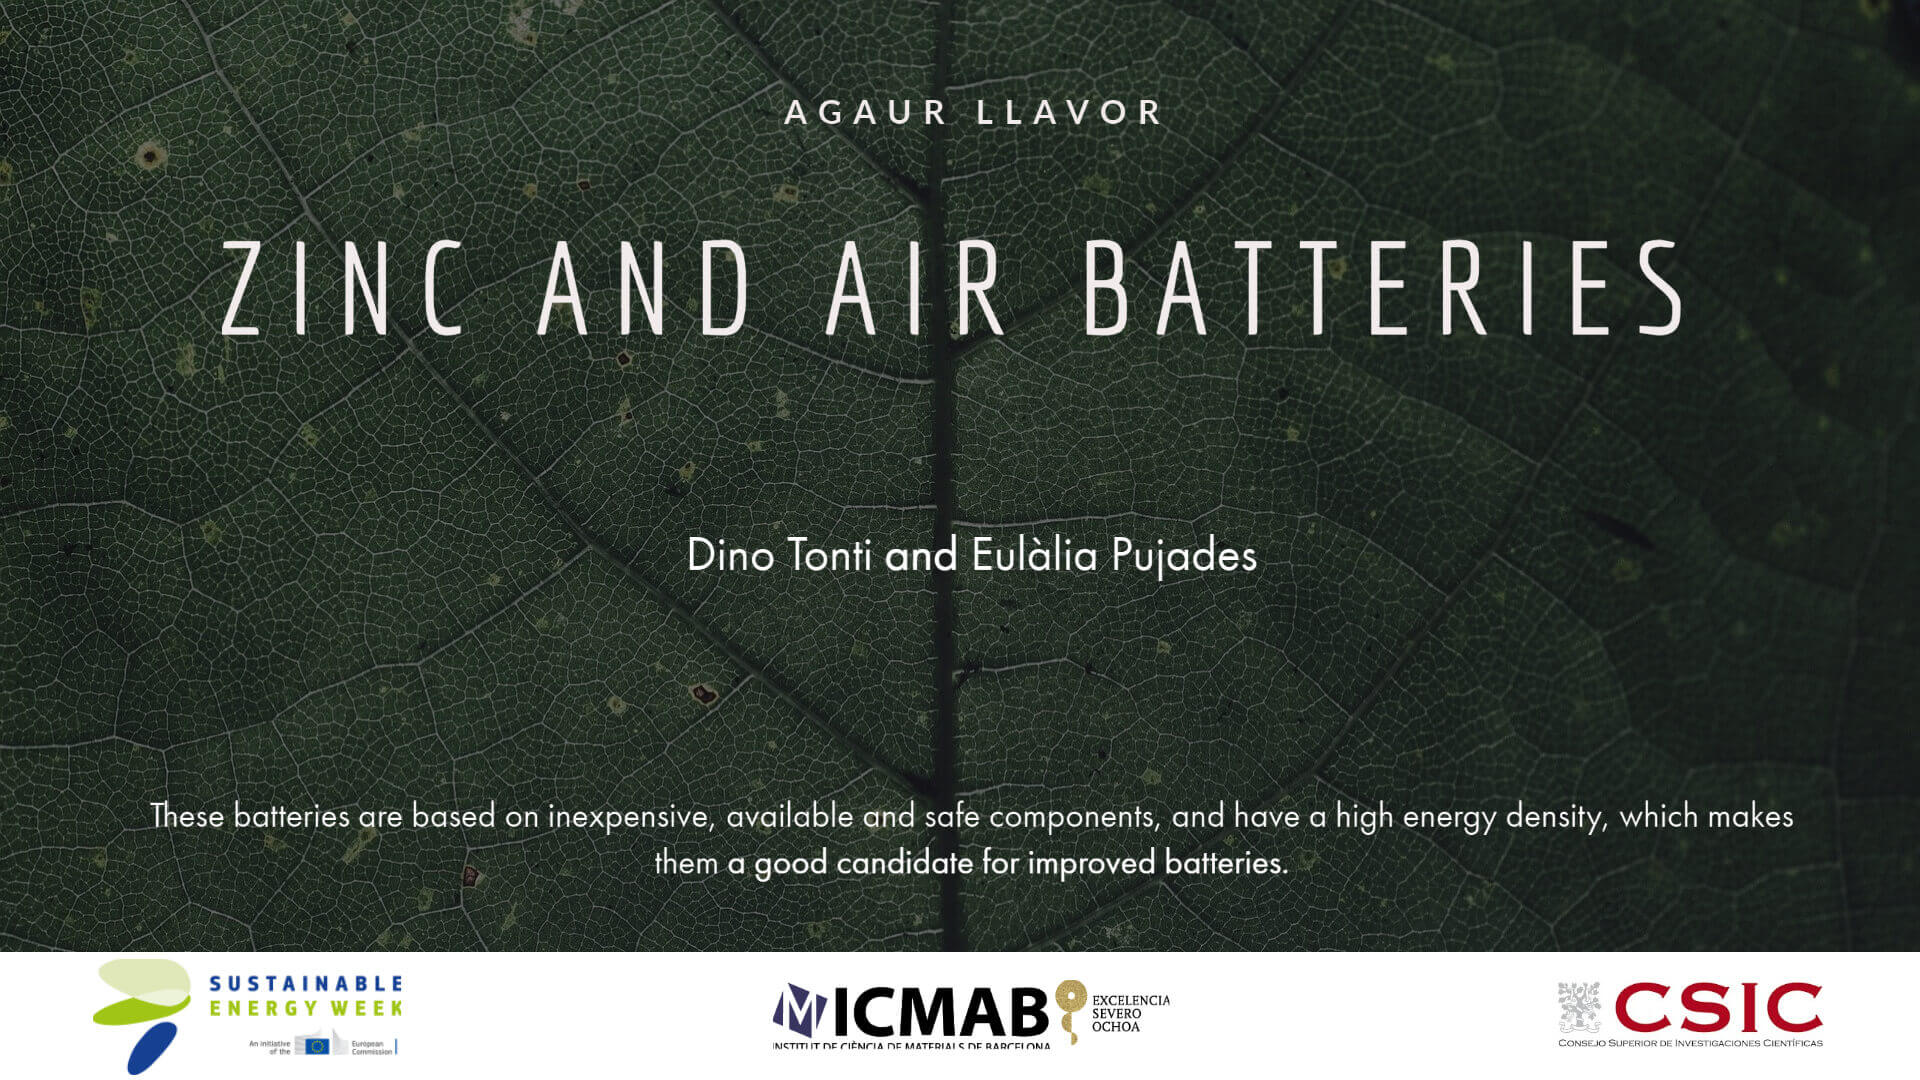 ZINC AND AIR BATTERIES